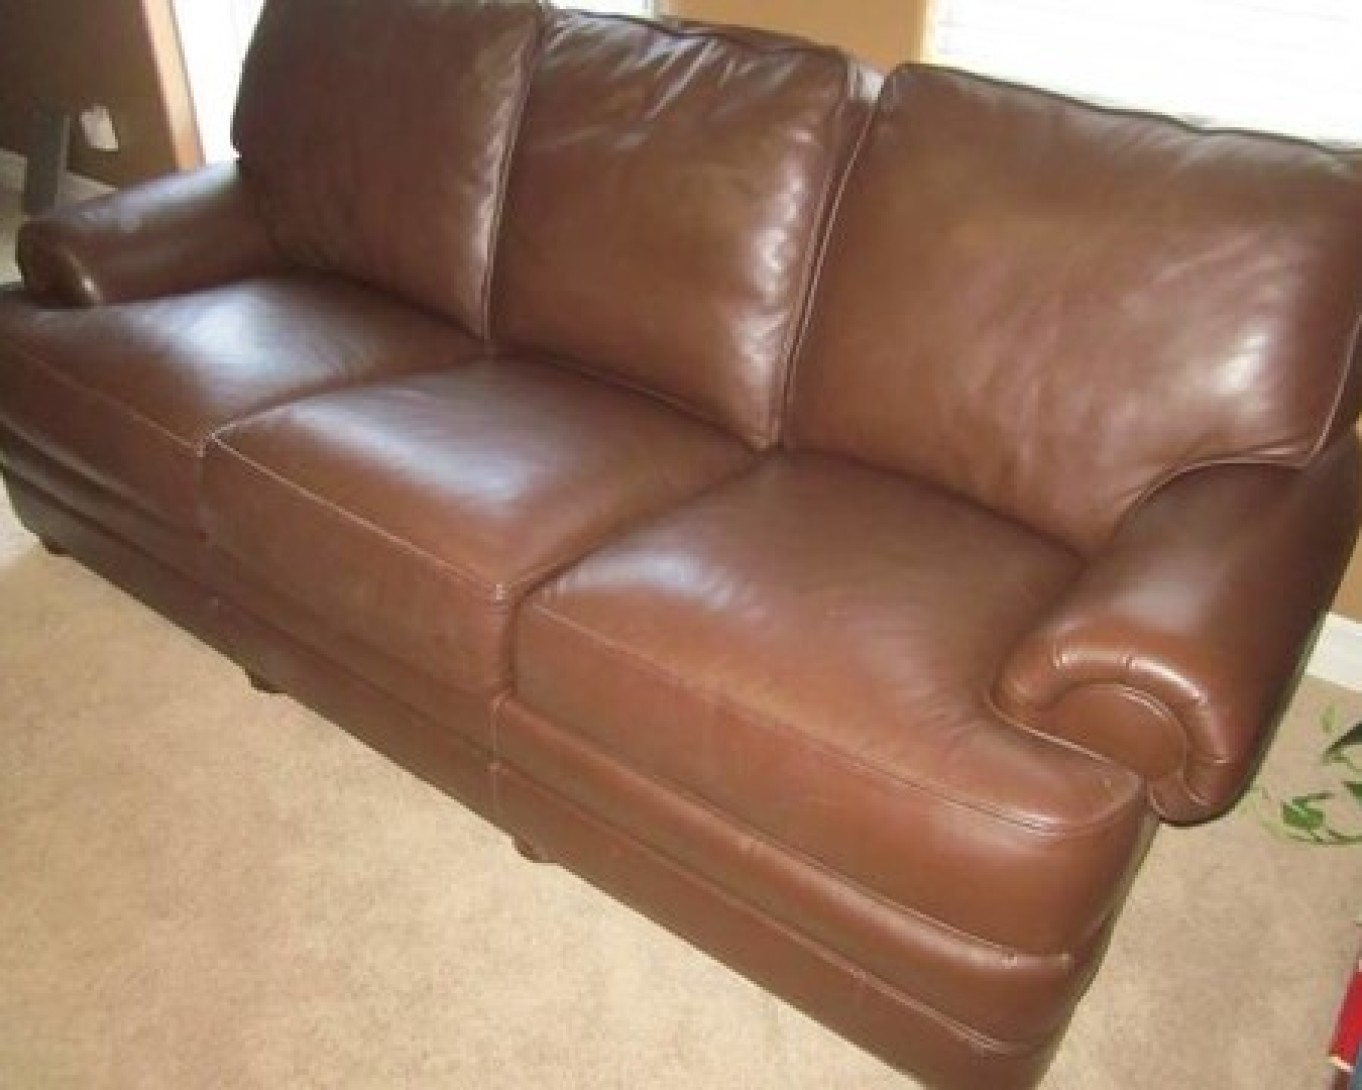 Dark Brown Leather Couch 7' - $500 (Coupeville)